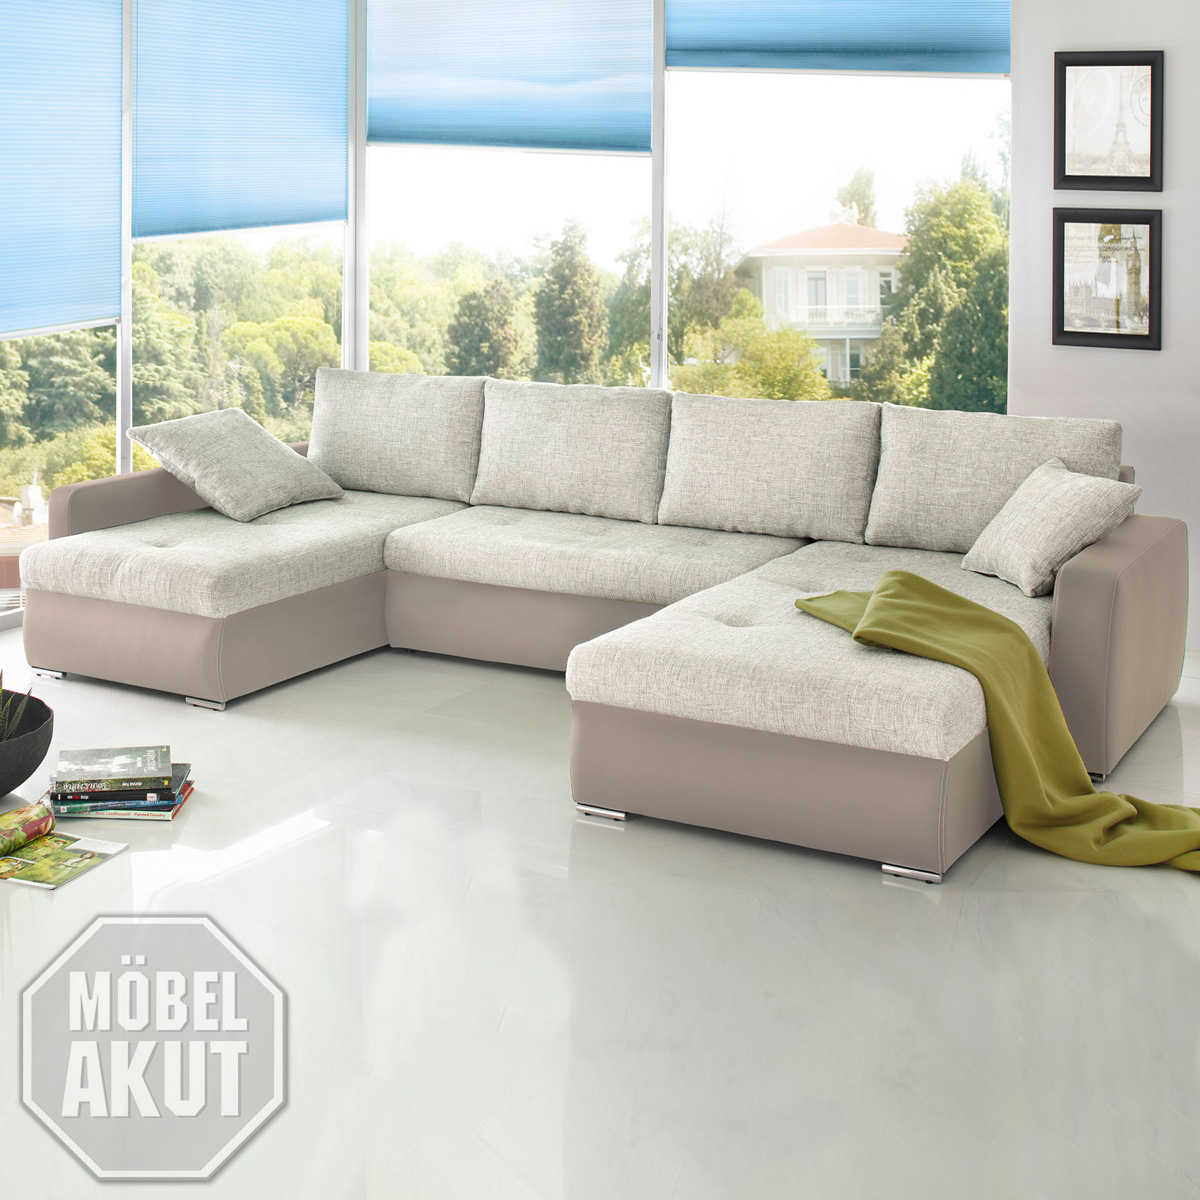 wohnlandschaft estelle ecksofa sofa hell braun grau bettfunktion und bettkasten ebay. Black Bedroom Furniture Sets. Home Design Ideas